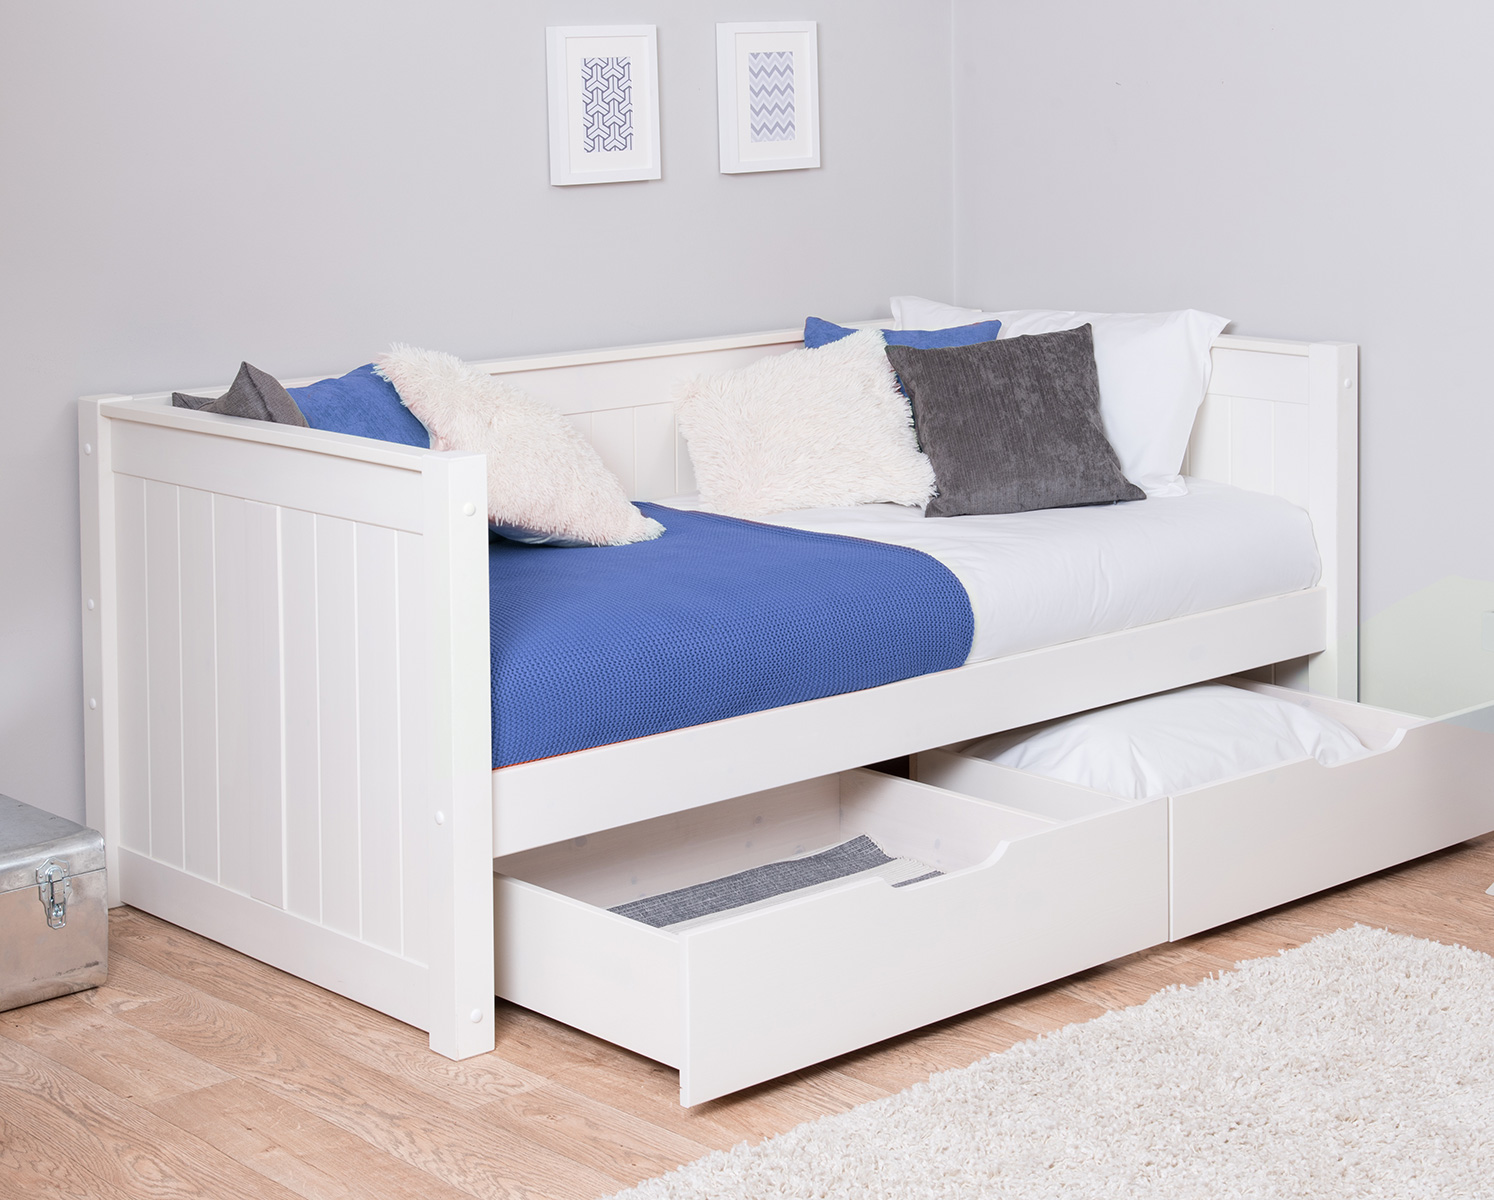 Classic Day Bed With Drawers By STOMPA For Children Amp Kids